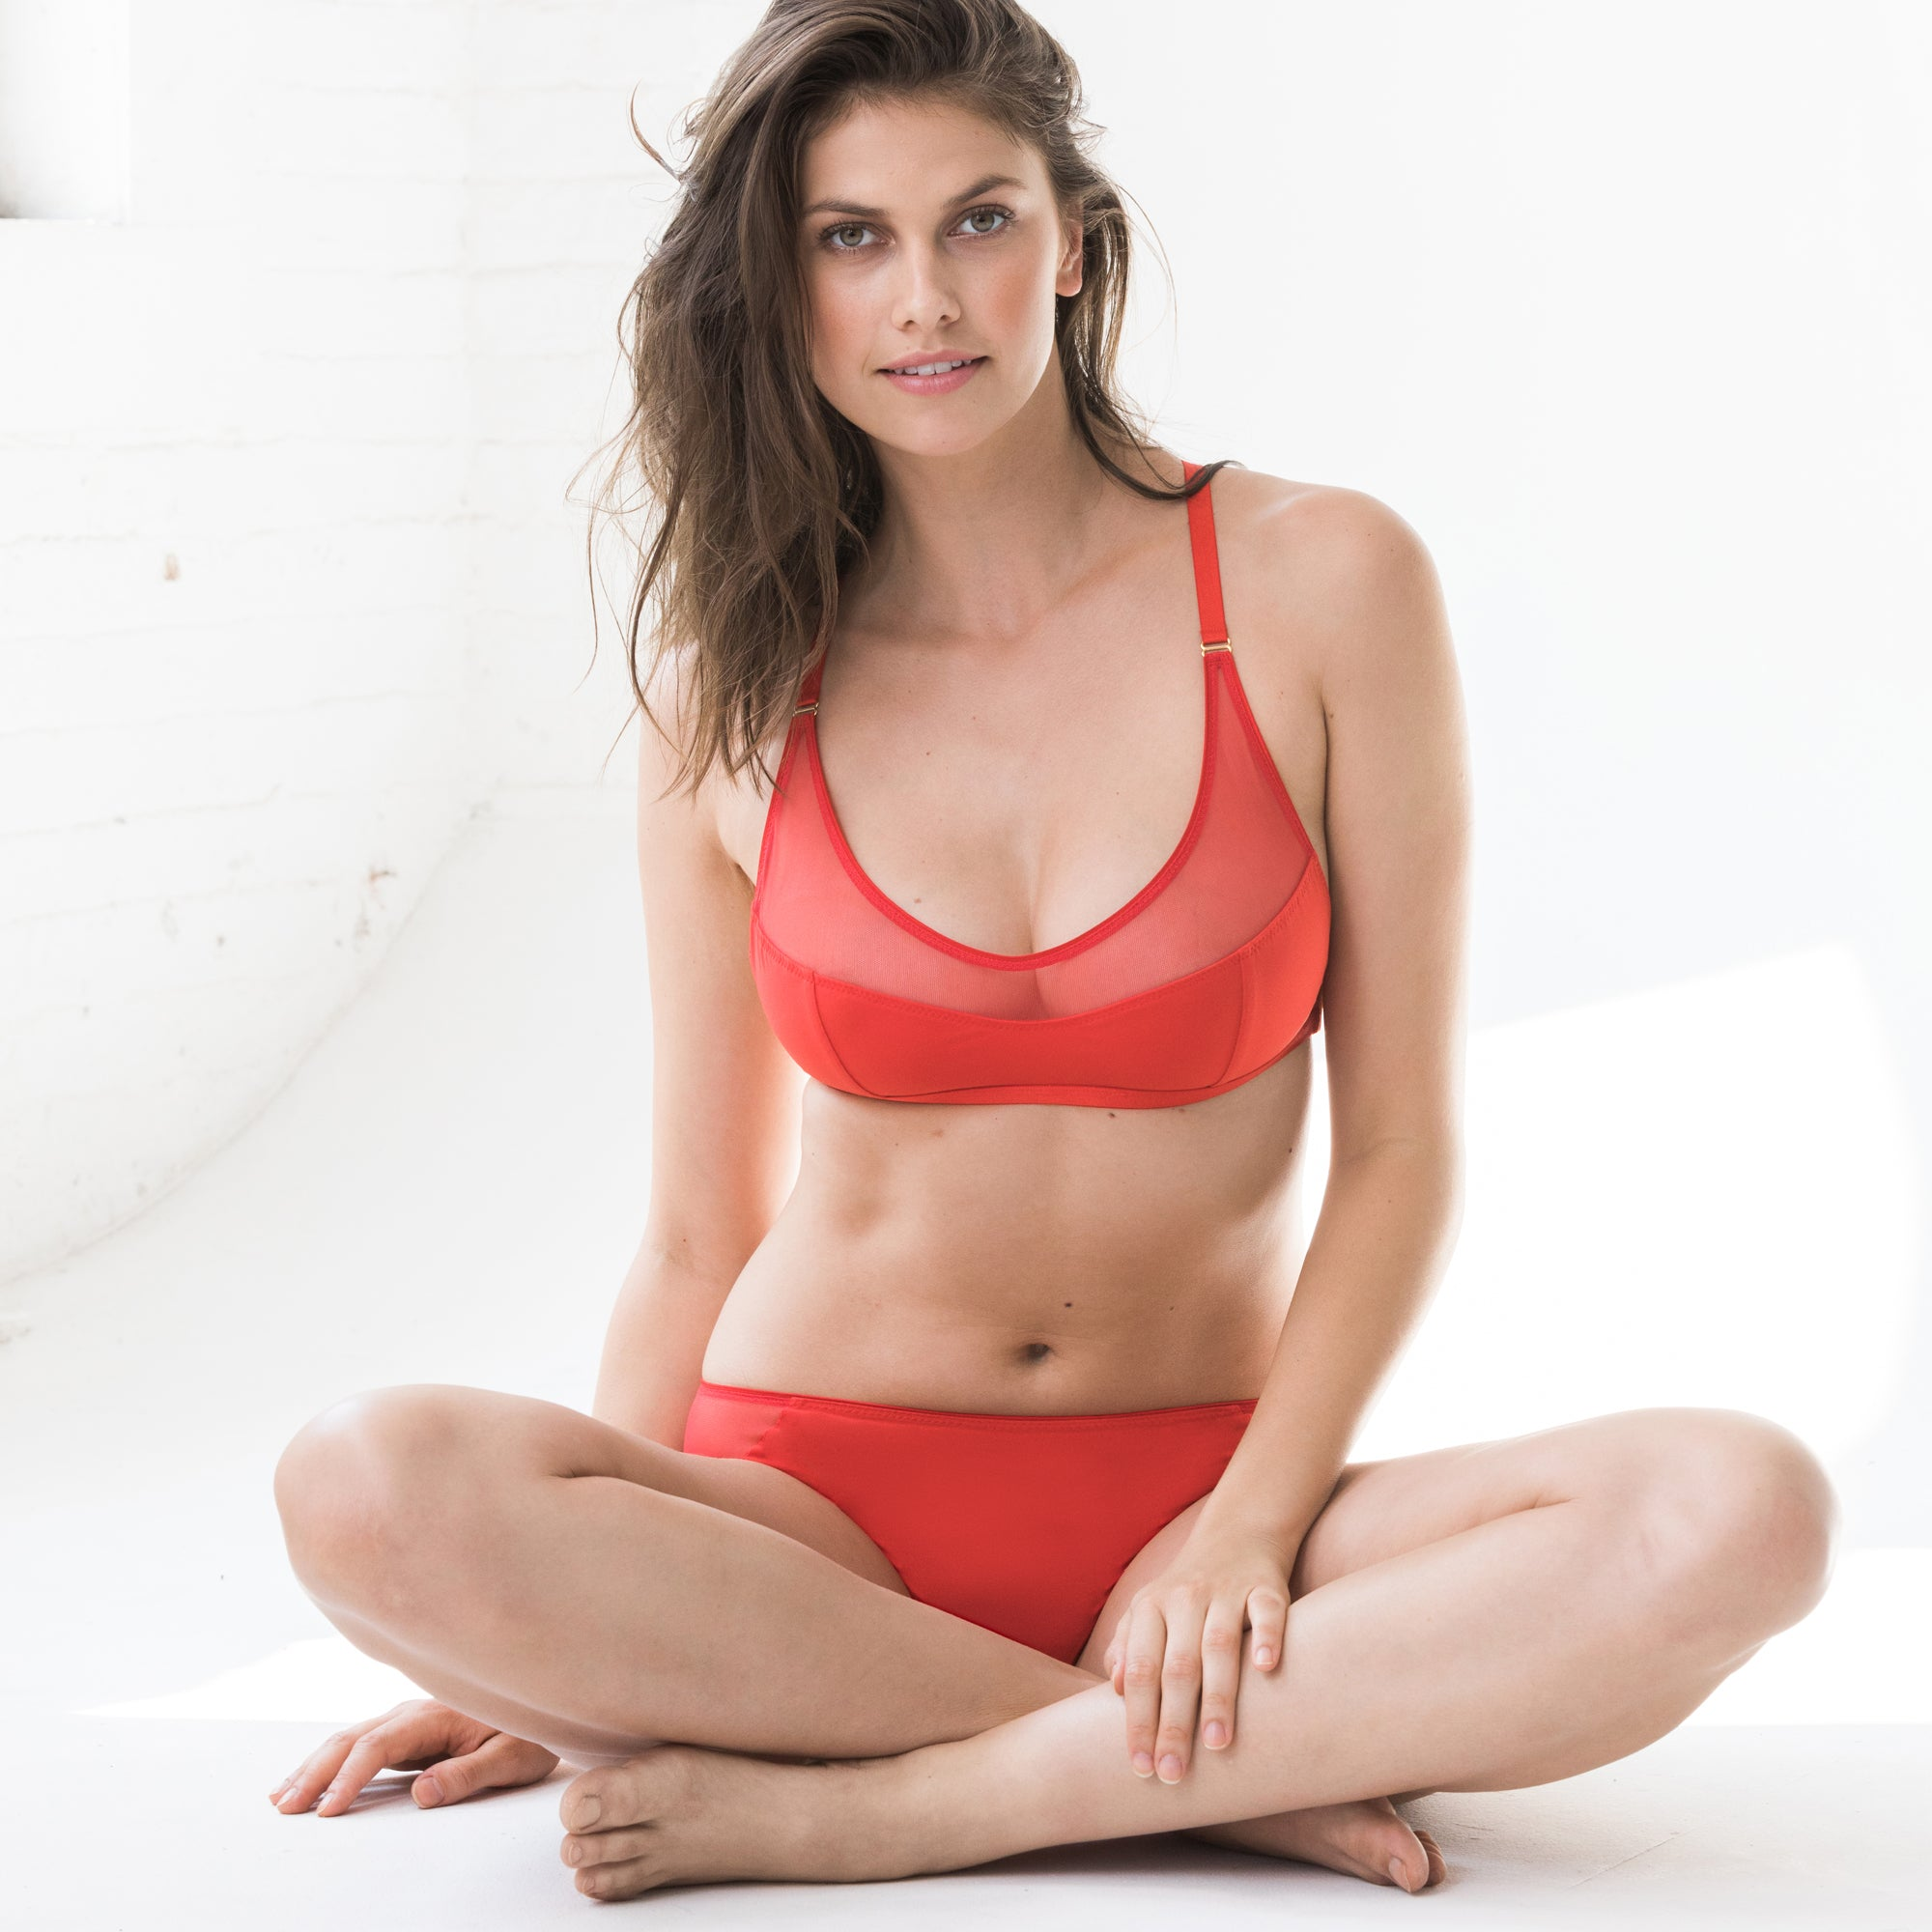 Lyn Lingerie  Lue Bandeau Soft Cup Bra This utterly gorgeous tulle and modal soft bra, with luxurious Swiss embroidery, killer back details, and brilliant red palette is a glorious nod to peek-a-boo perfection. Go on, show it off. We dare you.